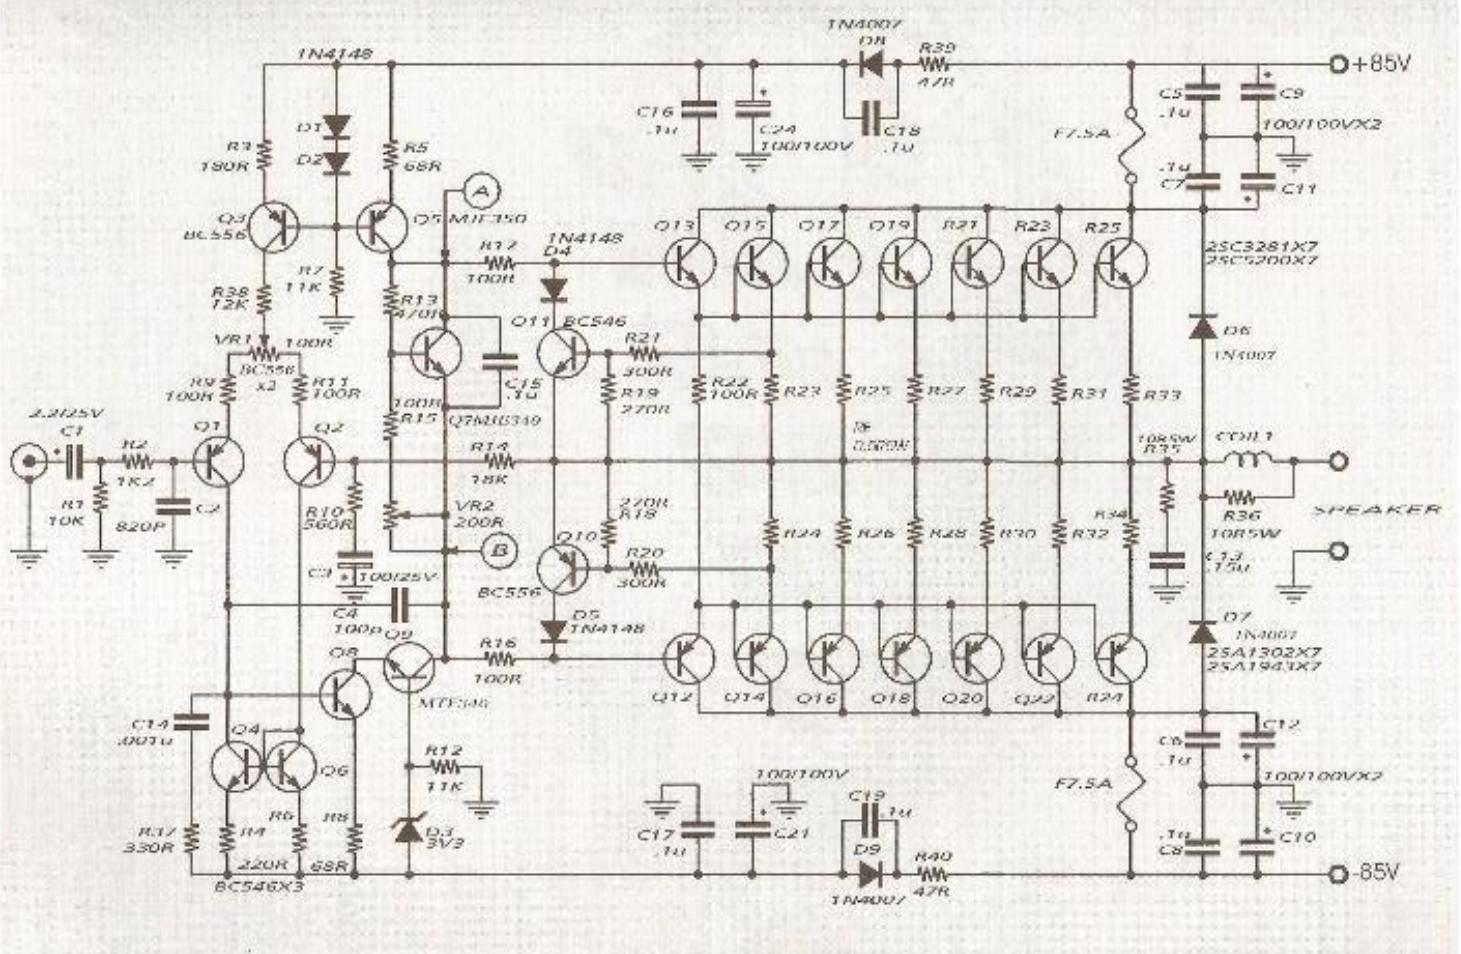 5000 watts amplifier schematic diagrams bw 7044  diagram likewise power inverter circuit diagram 250 to  likewise power inverter circuit diagram